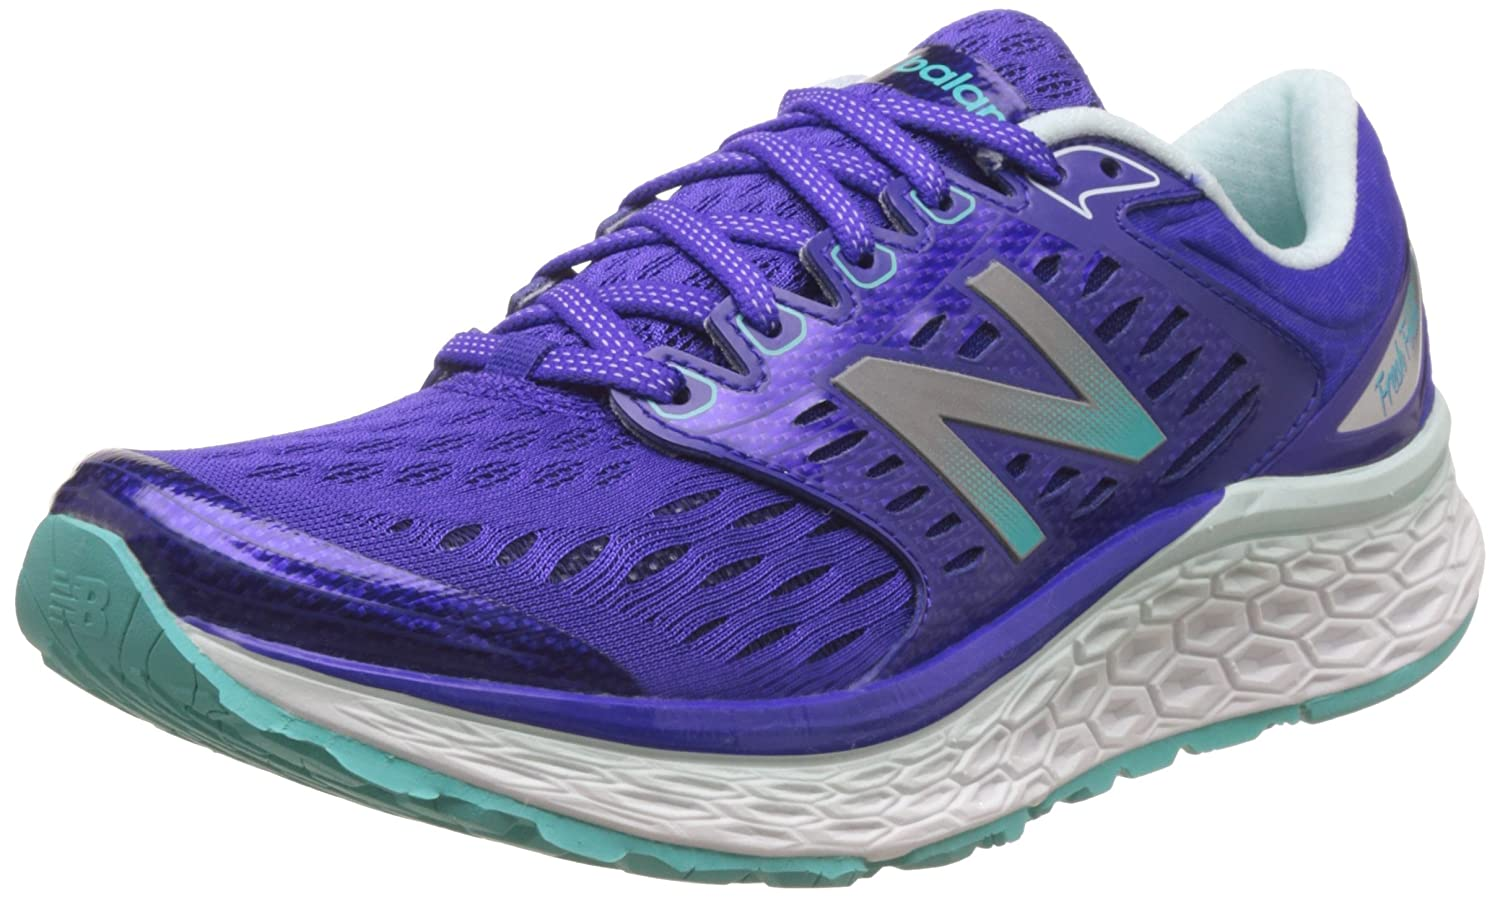 New Balance Women's Fresh Foam 1080v6 Running Shoe B019CVP30E 7.5 D US|Blue/White